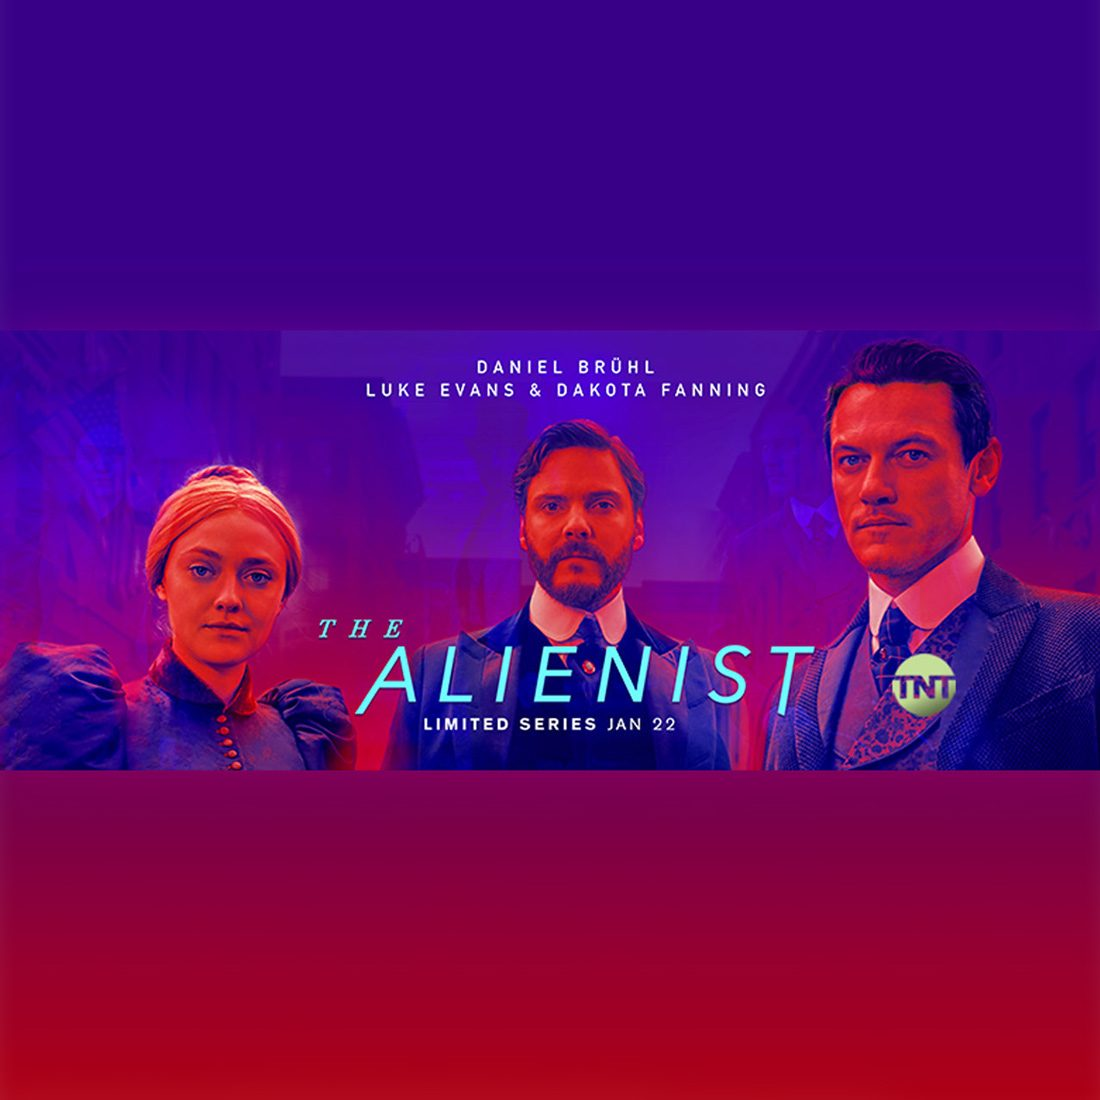 Image de couverture de The Alienist